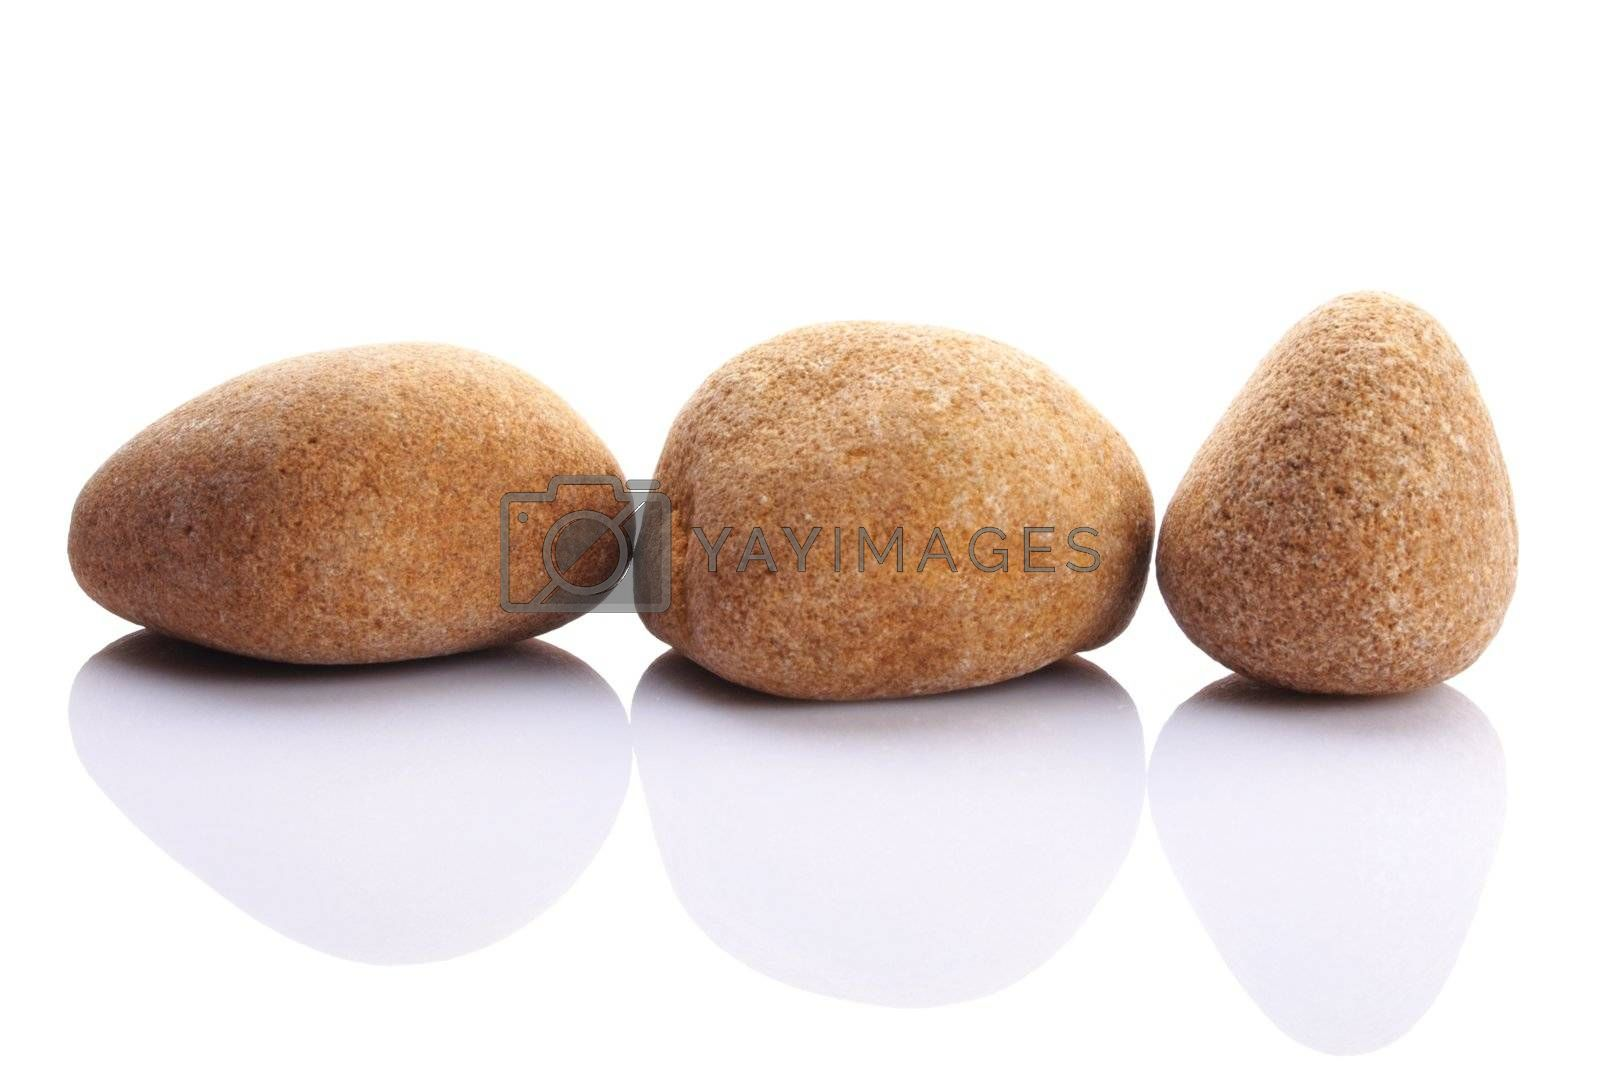 pebbles showing spa or zen stone garden concept isolated on white